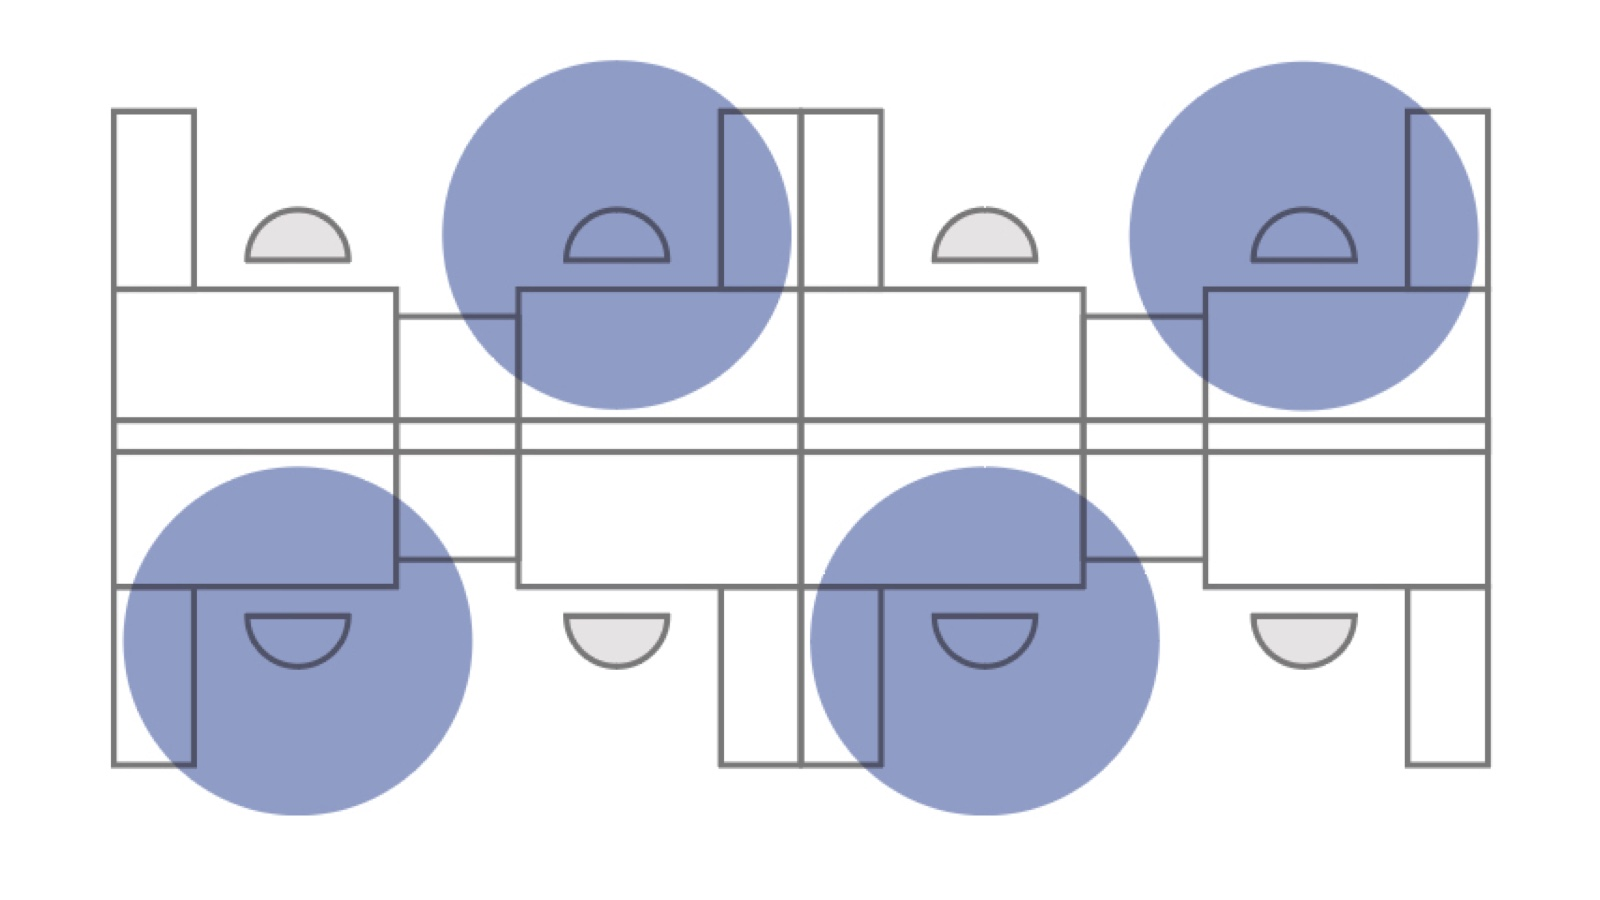 An illustrated diagram of a floorplan with squares and overlapping circles.